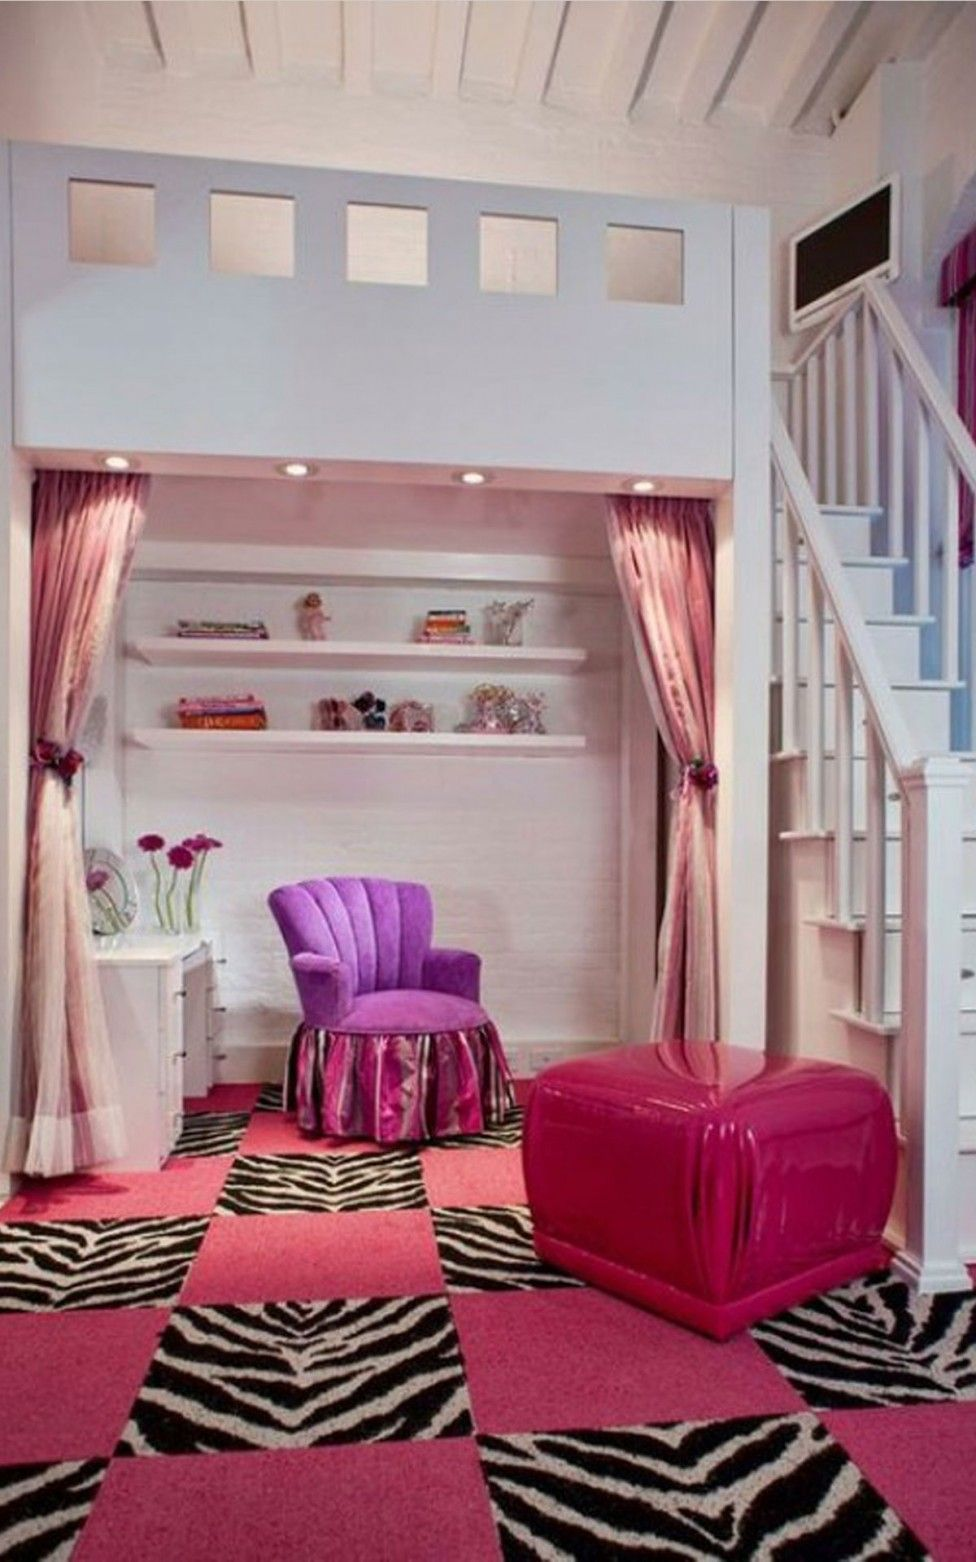 Room Decor Ideas For Teens small room ideas for girls with cute color bedroom 22 pretty girls